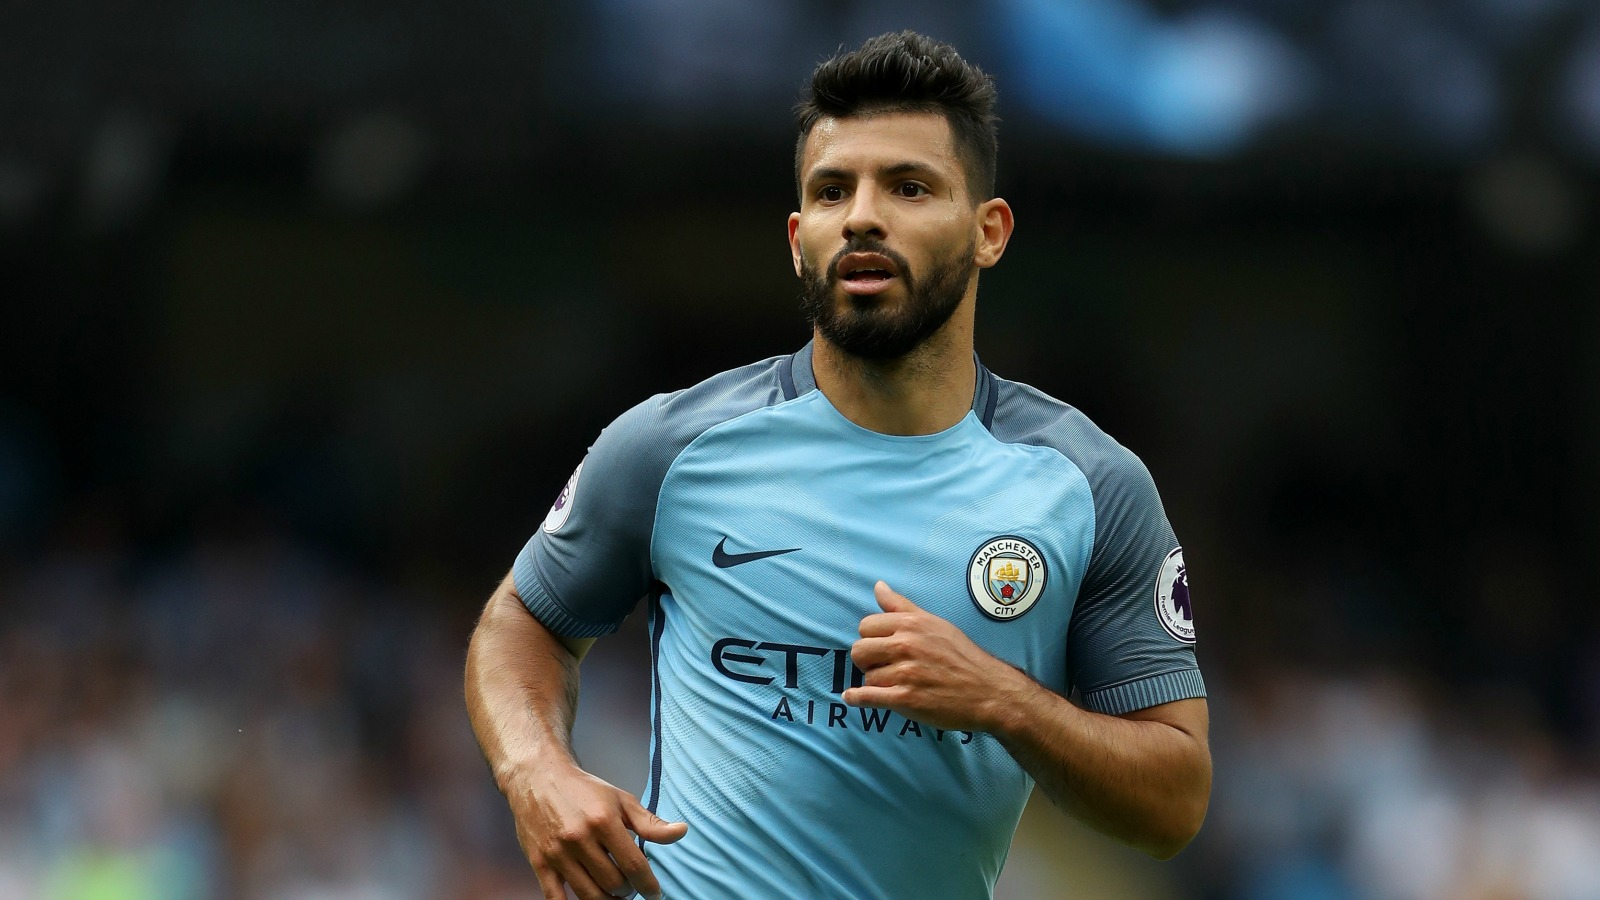 Sergio Aguero handed 3-game suspension that will keep him out of Manchester Derby